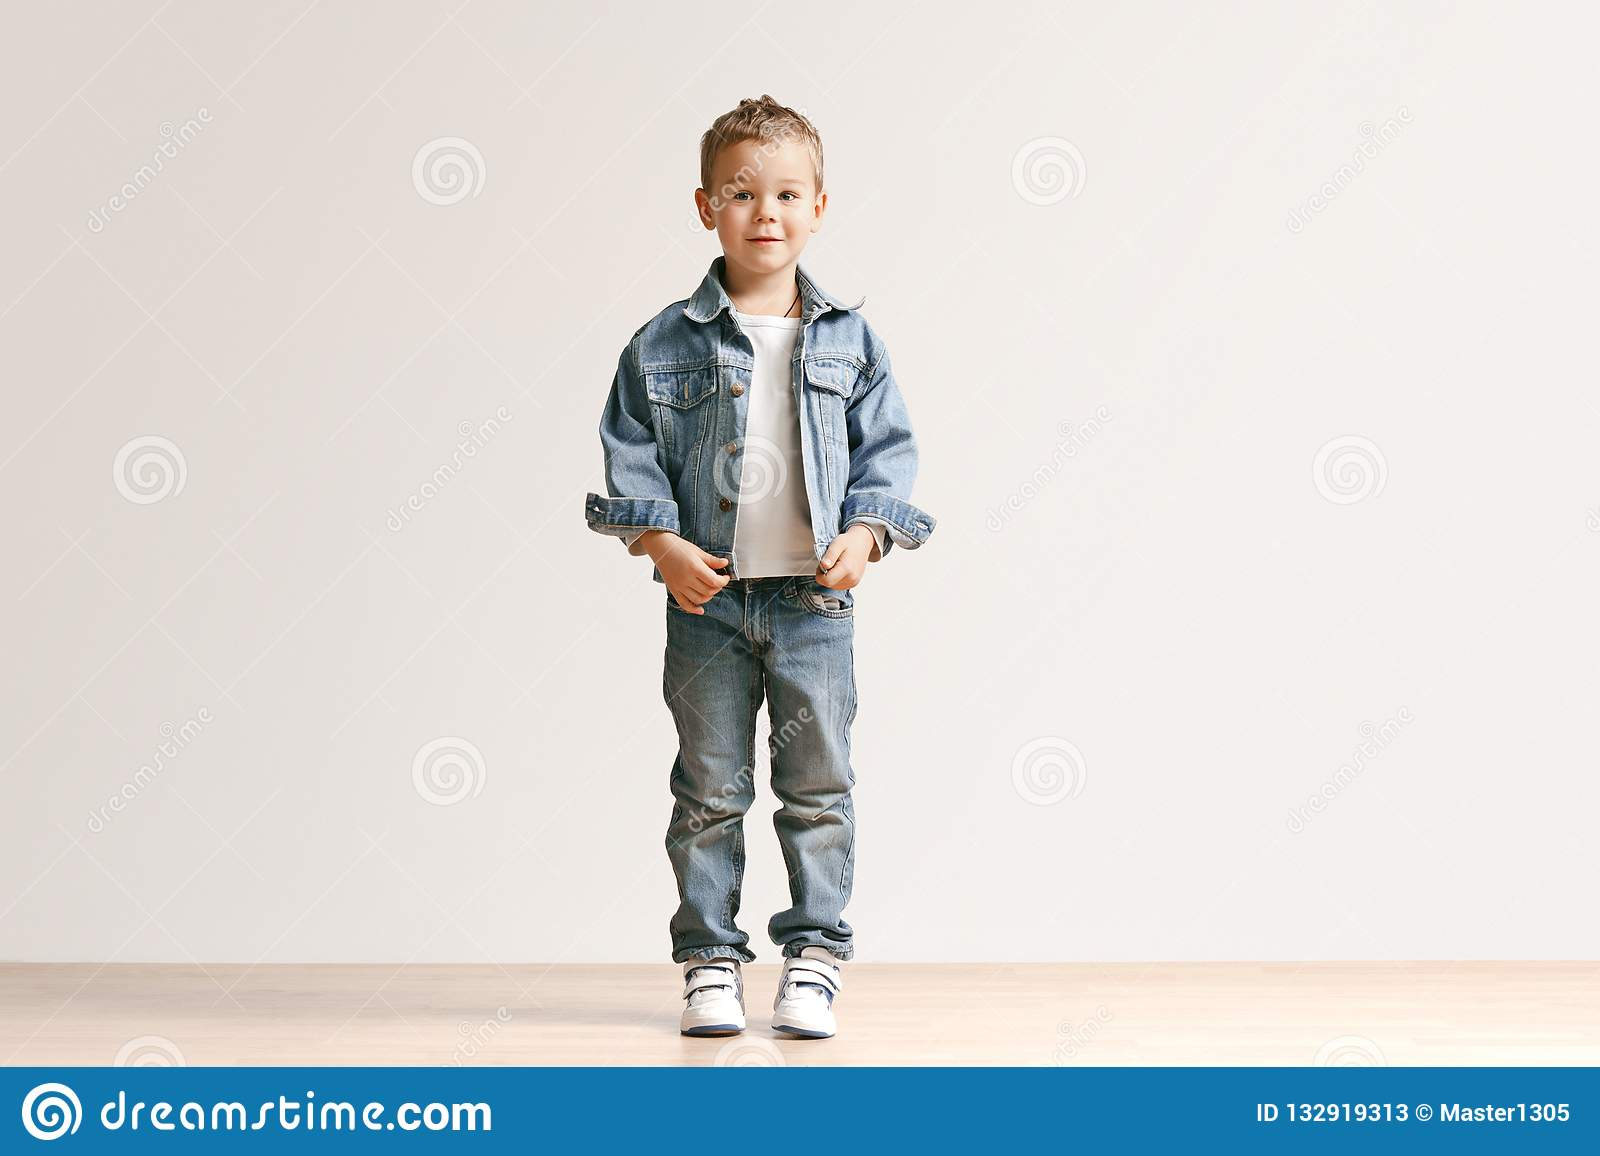 a8257a2f5 The portrait of cute little boy in stylish jeans clothes looking at camera  at studio